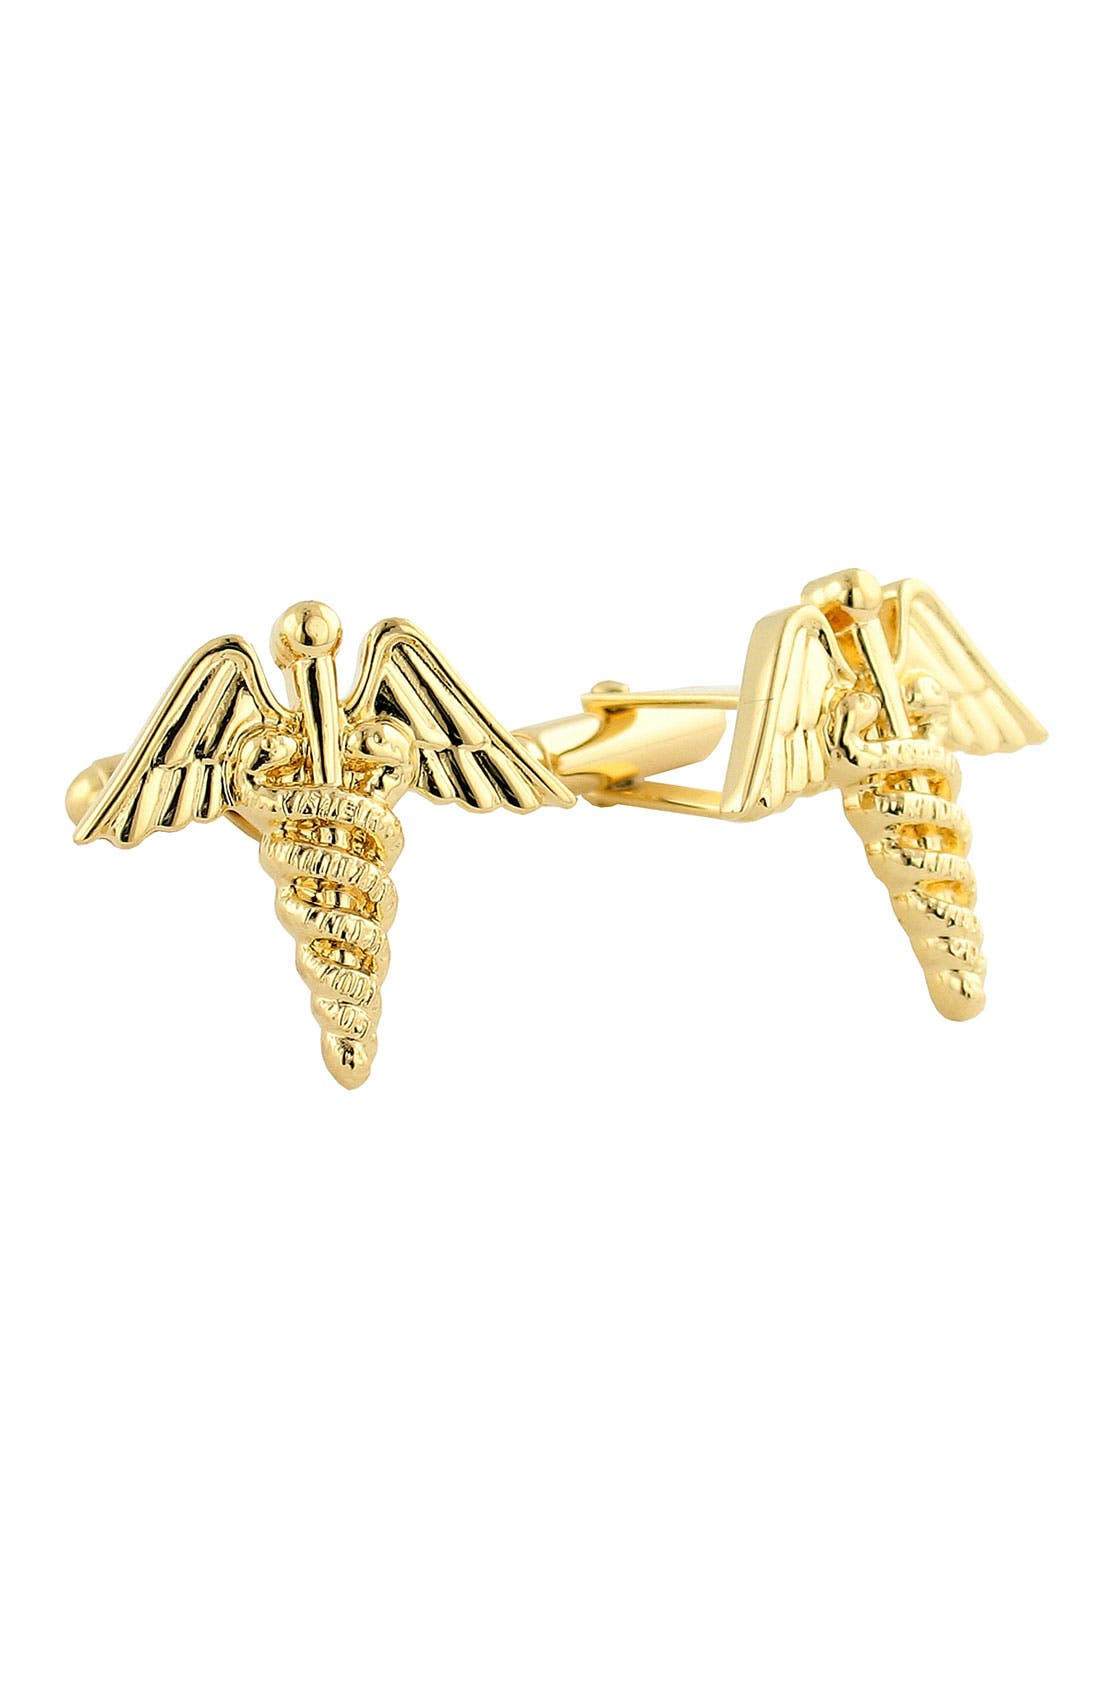 DAVID DONAHUE Medical Caduceus Cuff Links